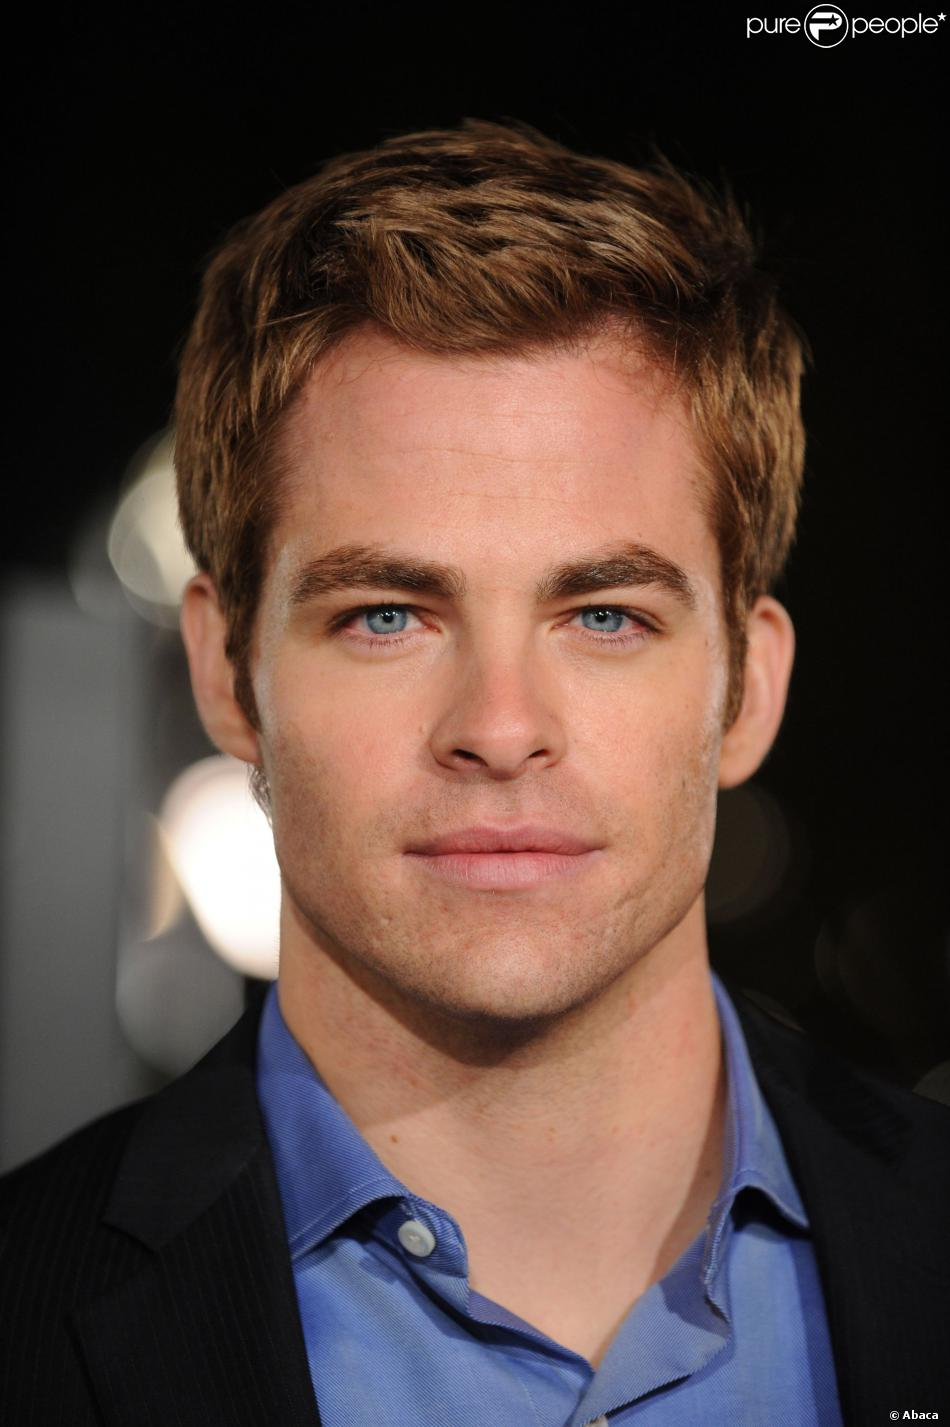 Chris Pine On The Set Of One Day She Ll Darken: Why Lift When It's All About Being Chris Pine? (pics